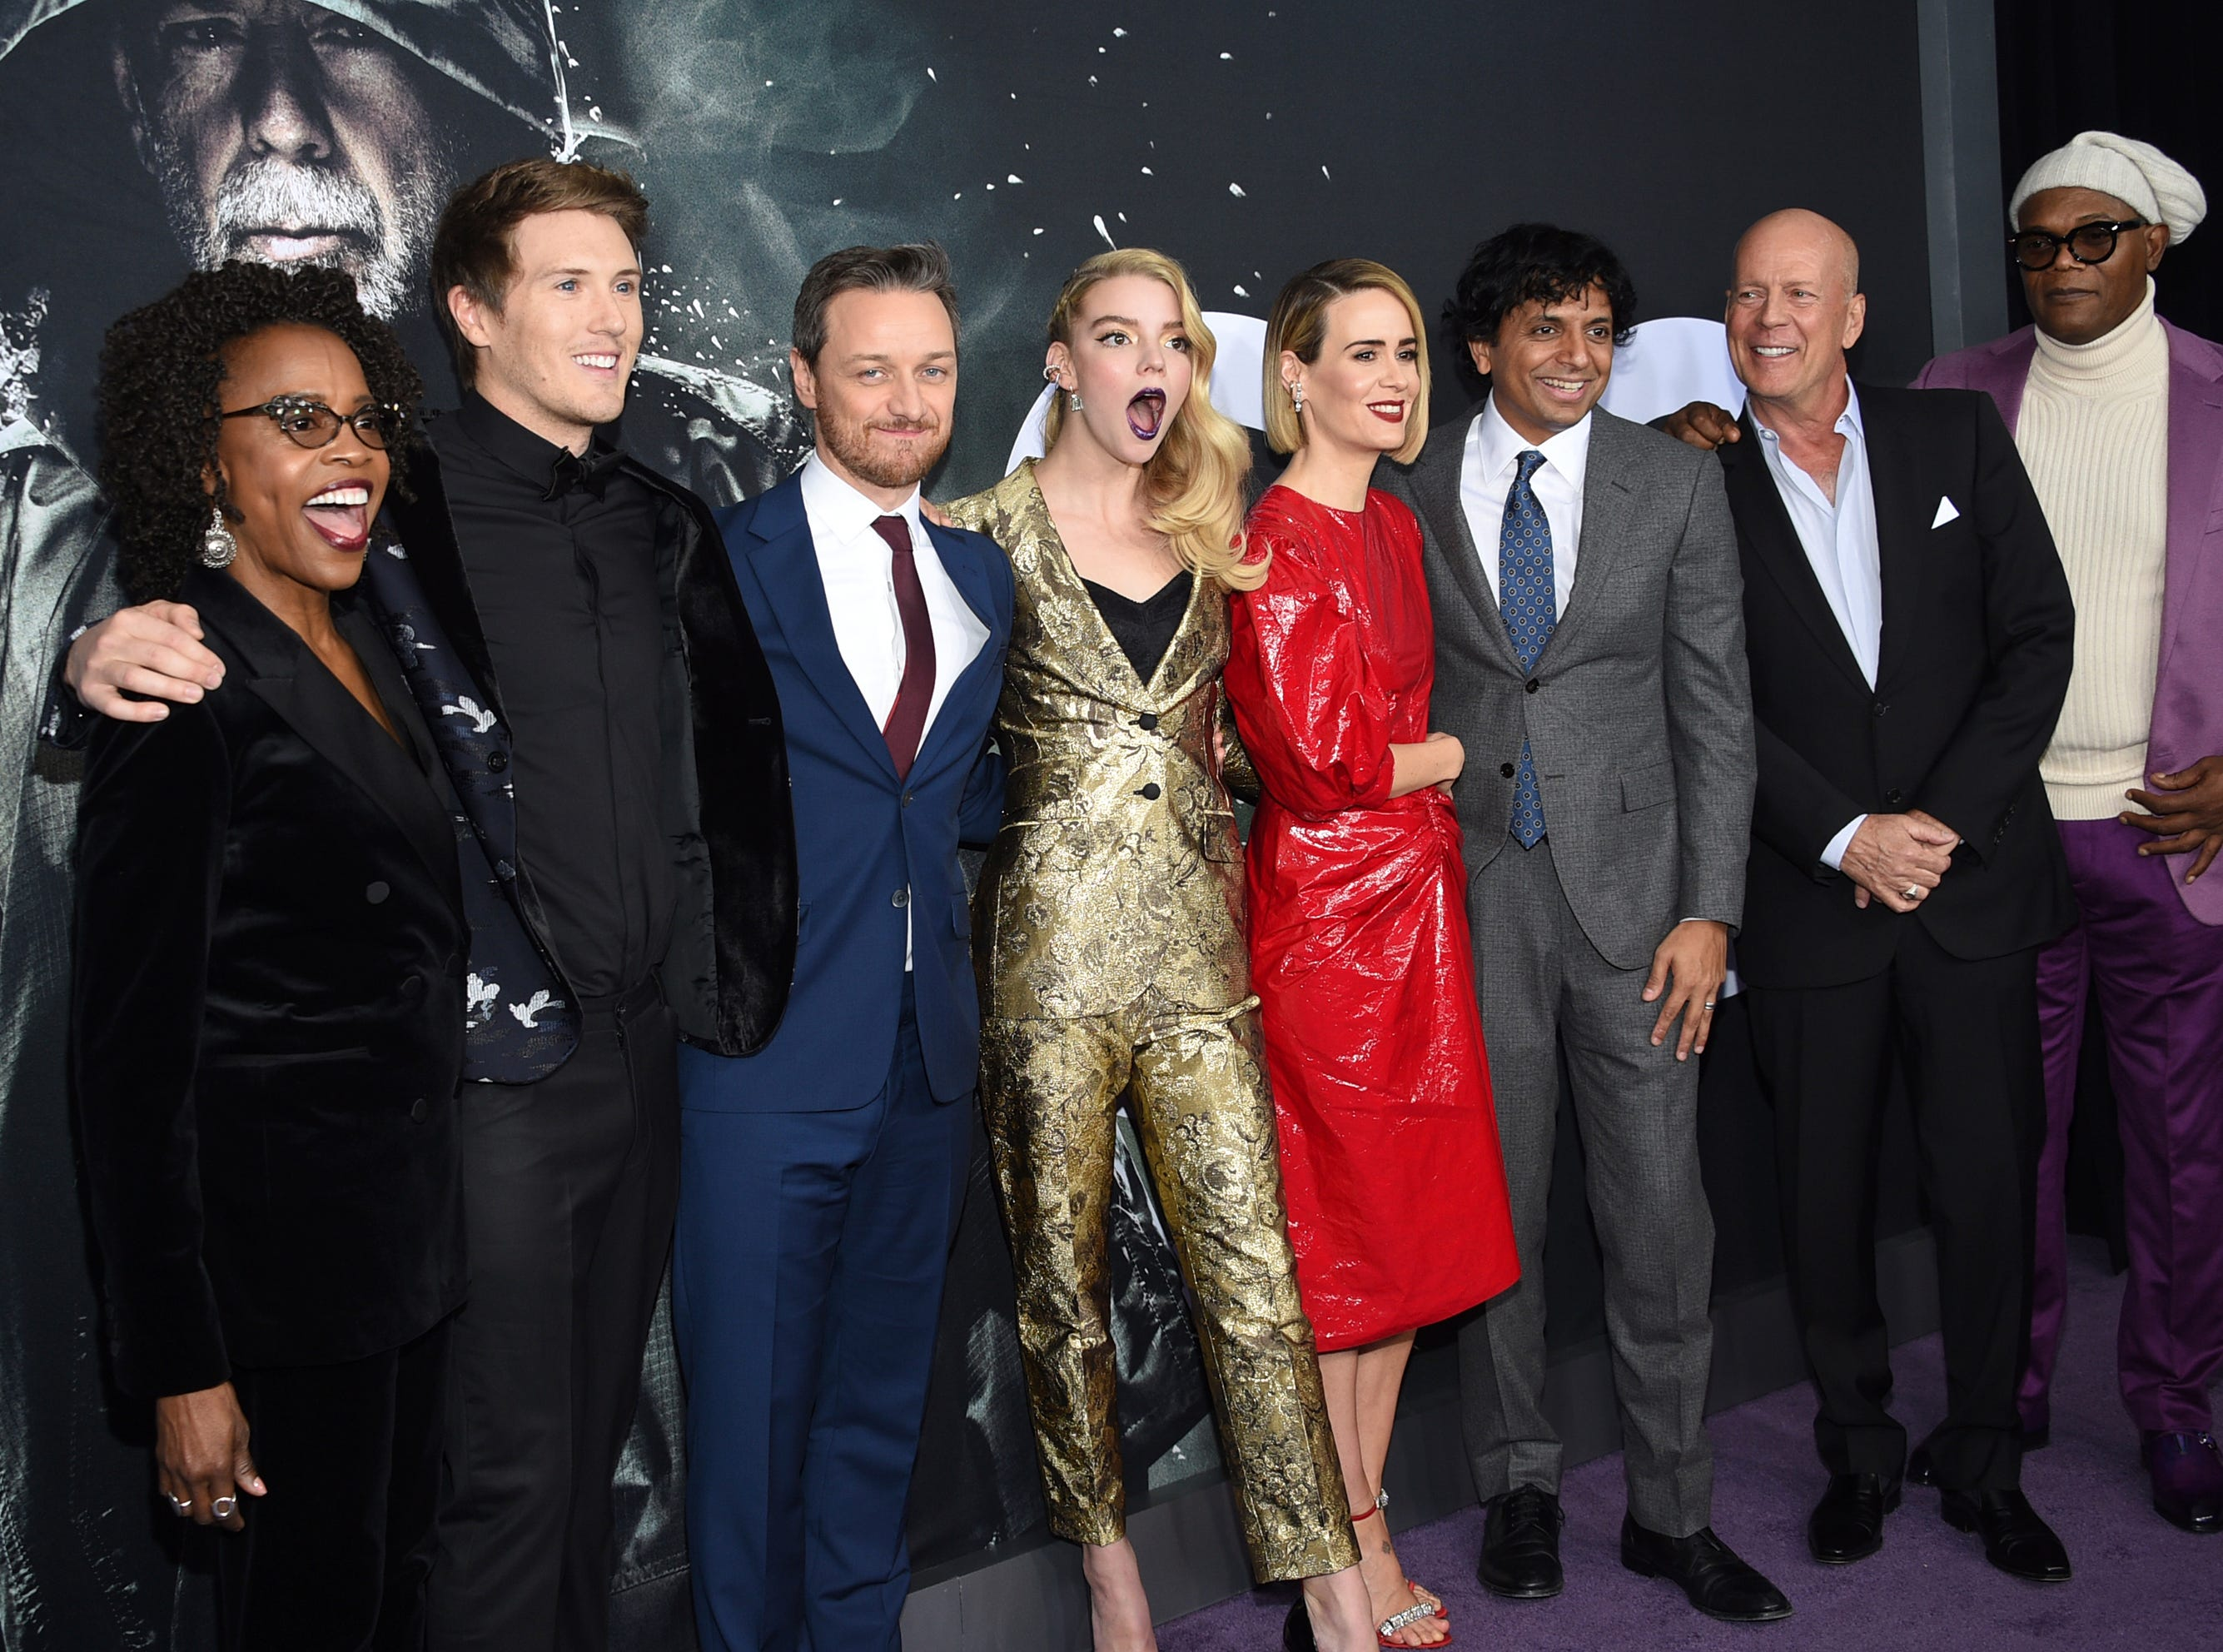 """Charlayne Woodard, from left, Spencer Treat Clark, James McAvoy, Anya Taylor-Joy, Sarah Paulson, M. Night Shyamalan, Bruce Willis and Samuel L. Jackson attend the premiere of """"Glass"""" at the SVA Theatre on Tuesday, Jan. 15, 2019, in New York."""